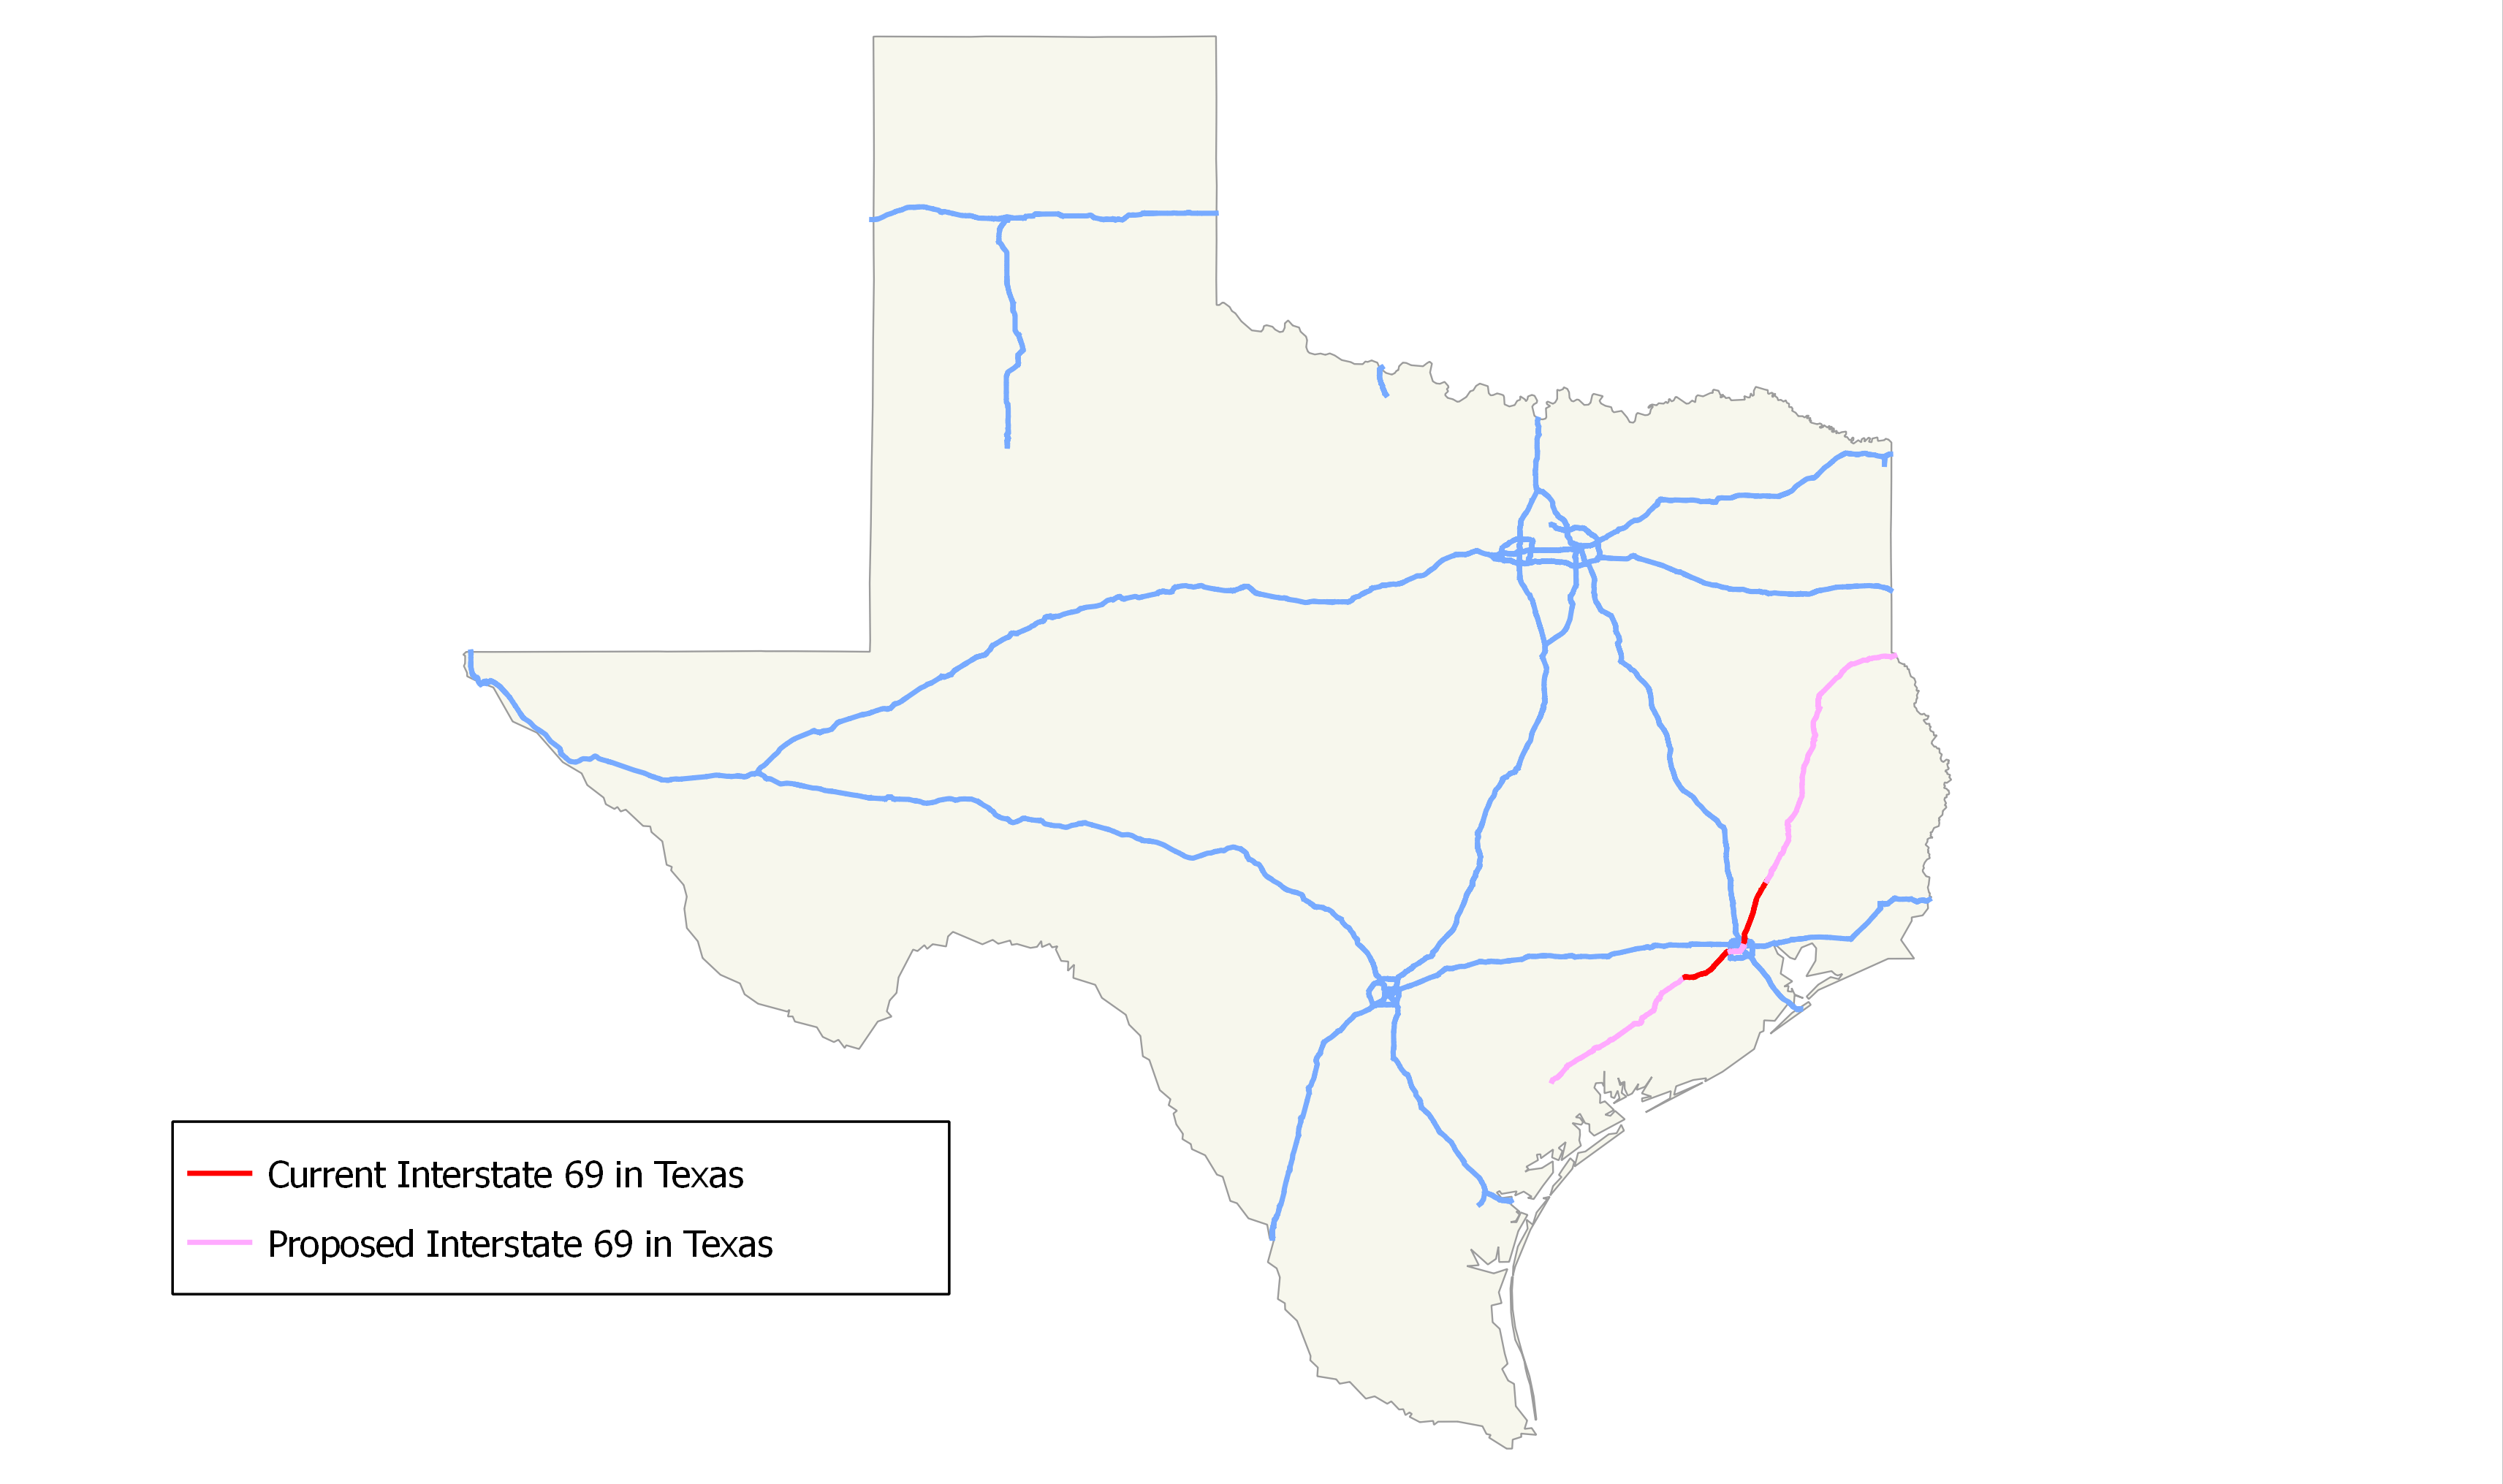 Map Of Interstate 69 In Texas.File Interstate 69 In Texas Png Wikimedia Commons